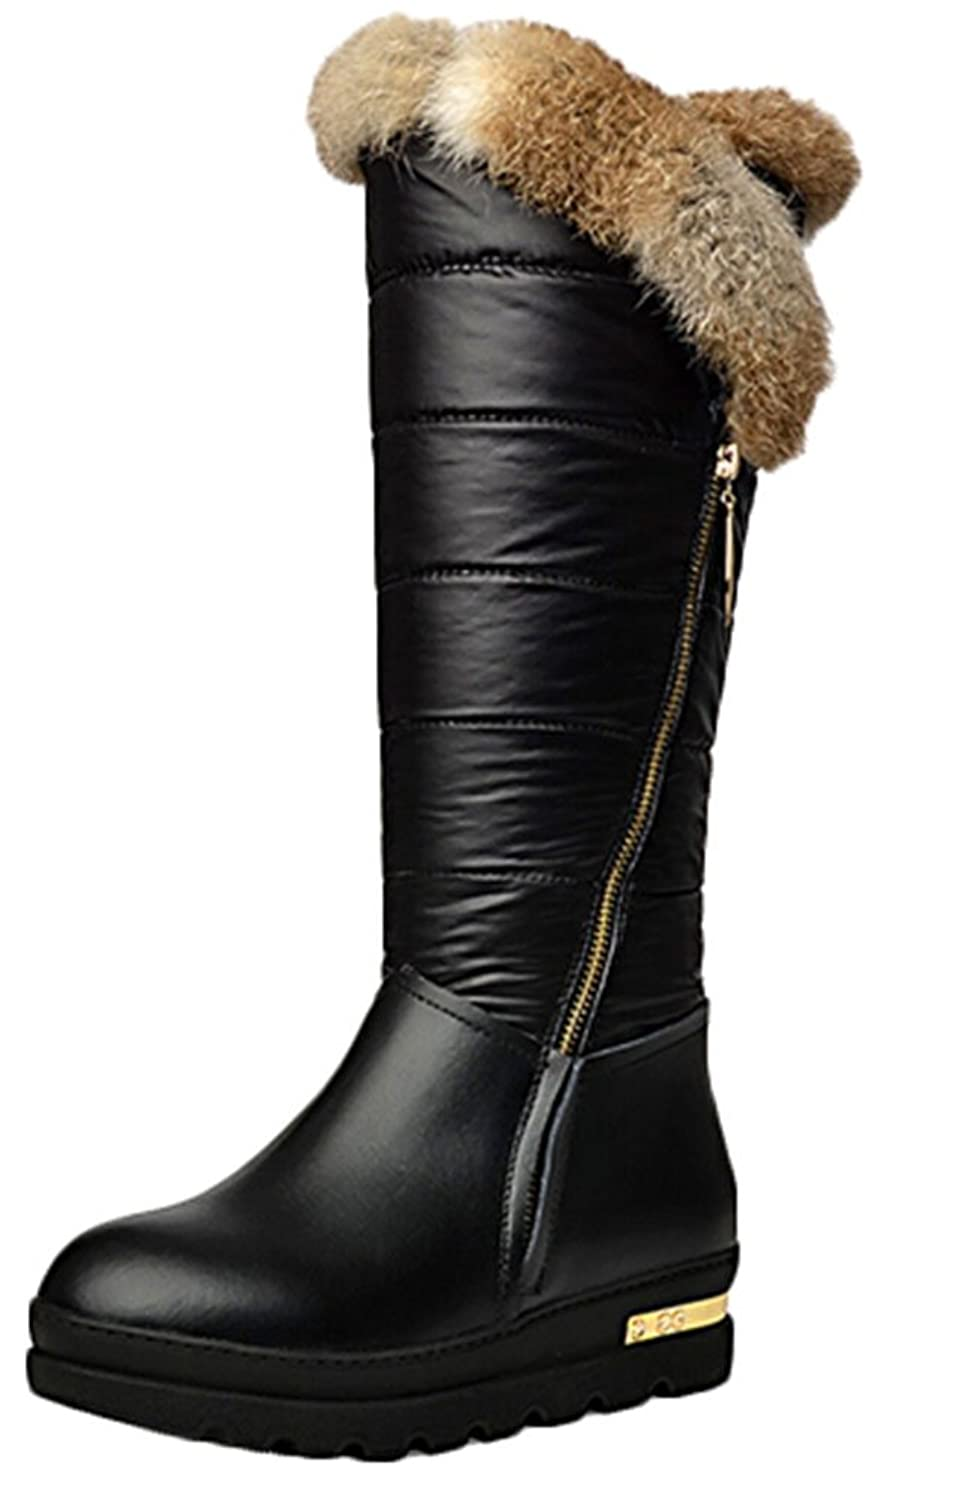 2014 Winter the New Rabbit Hair Feather Velvet Boots Warm Woman Cotton Shoe Flat Woman in Tube Boots Trifle Thick Crust Snow Boots